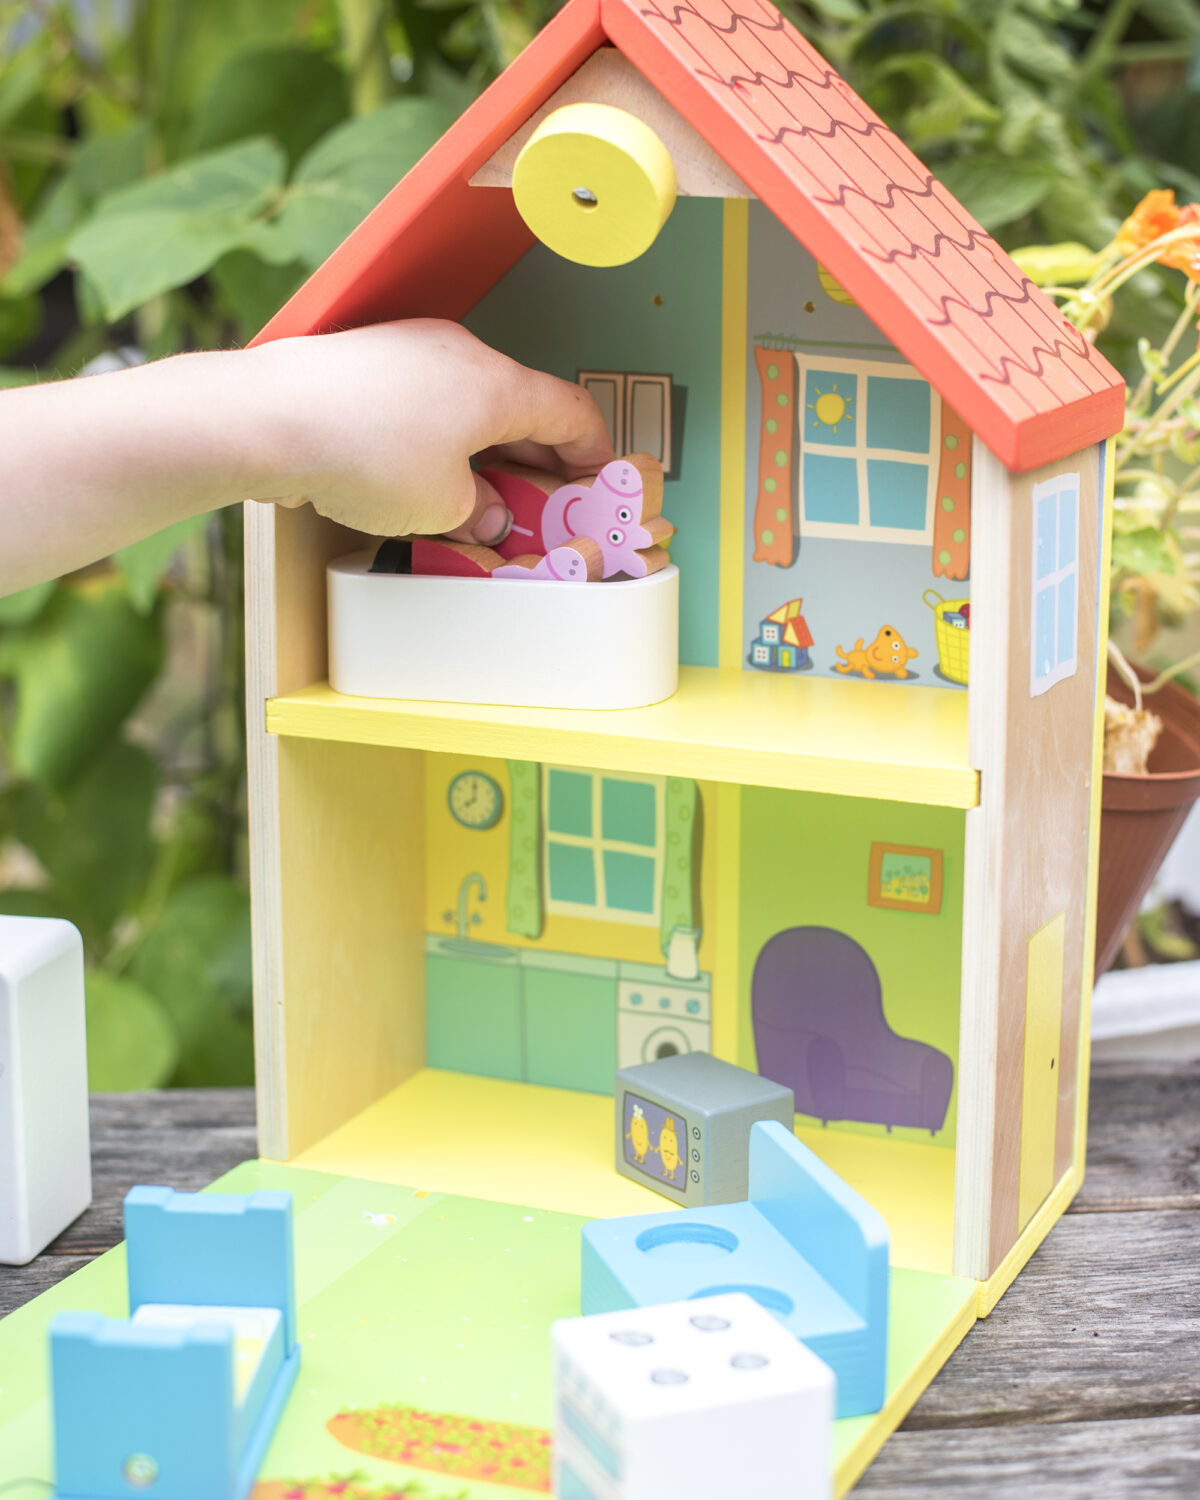 Inside of Peppa Pig Wooden House